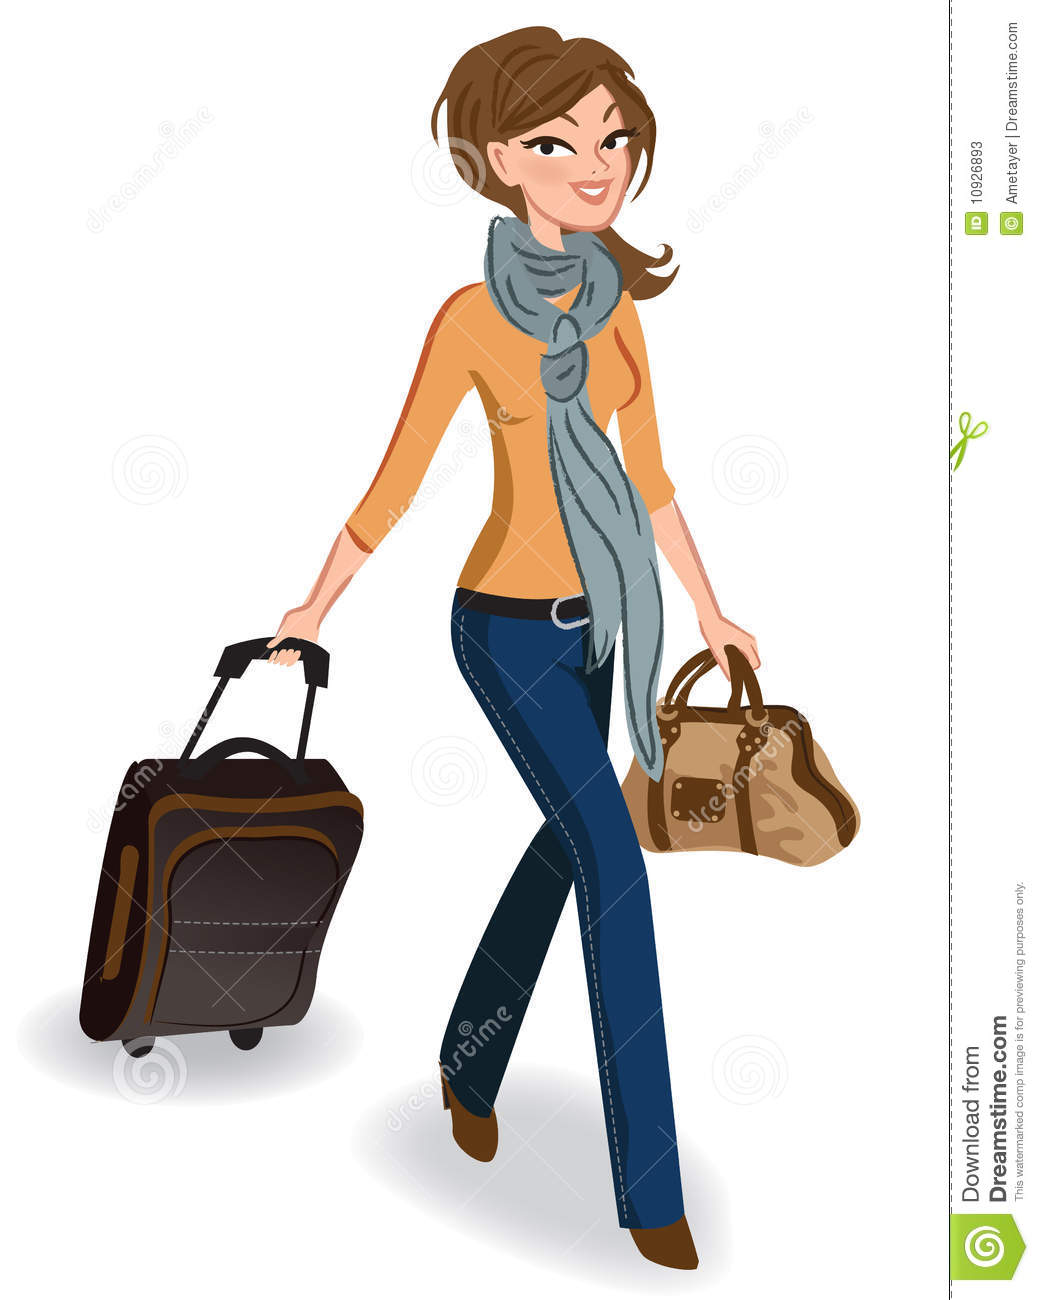 Travelling woman stock vector. Image of beauty, girl ...